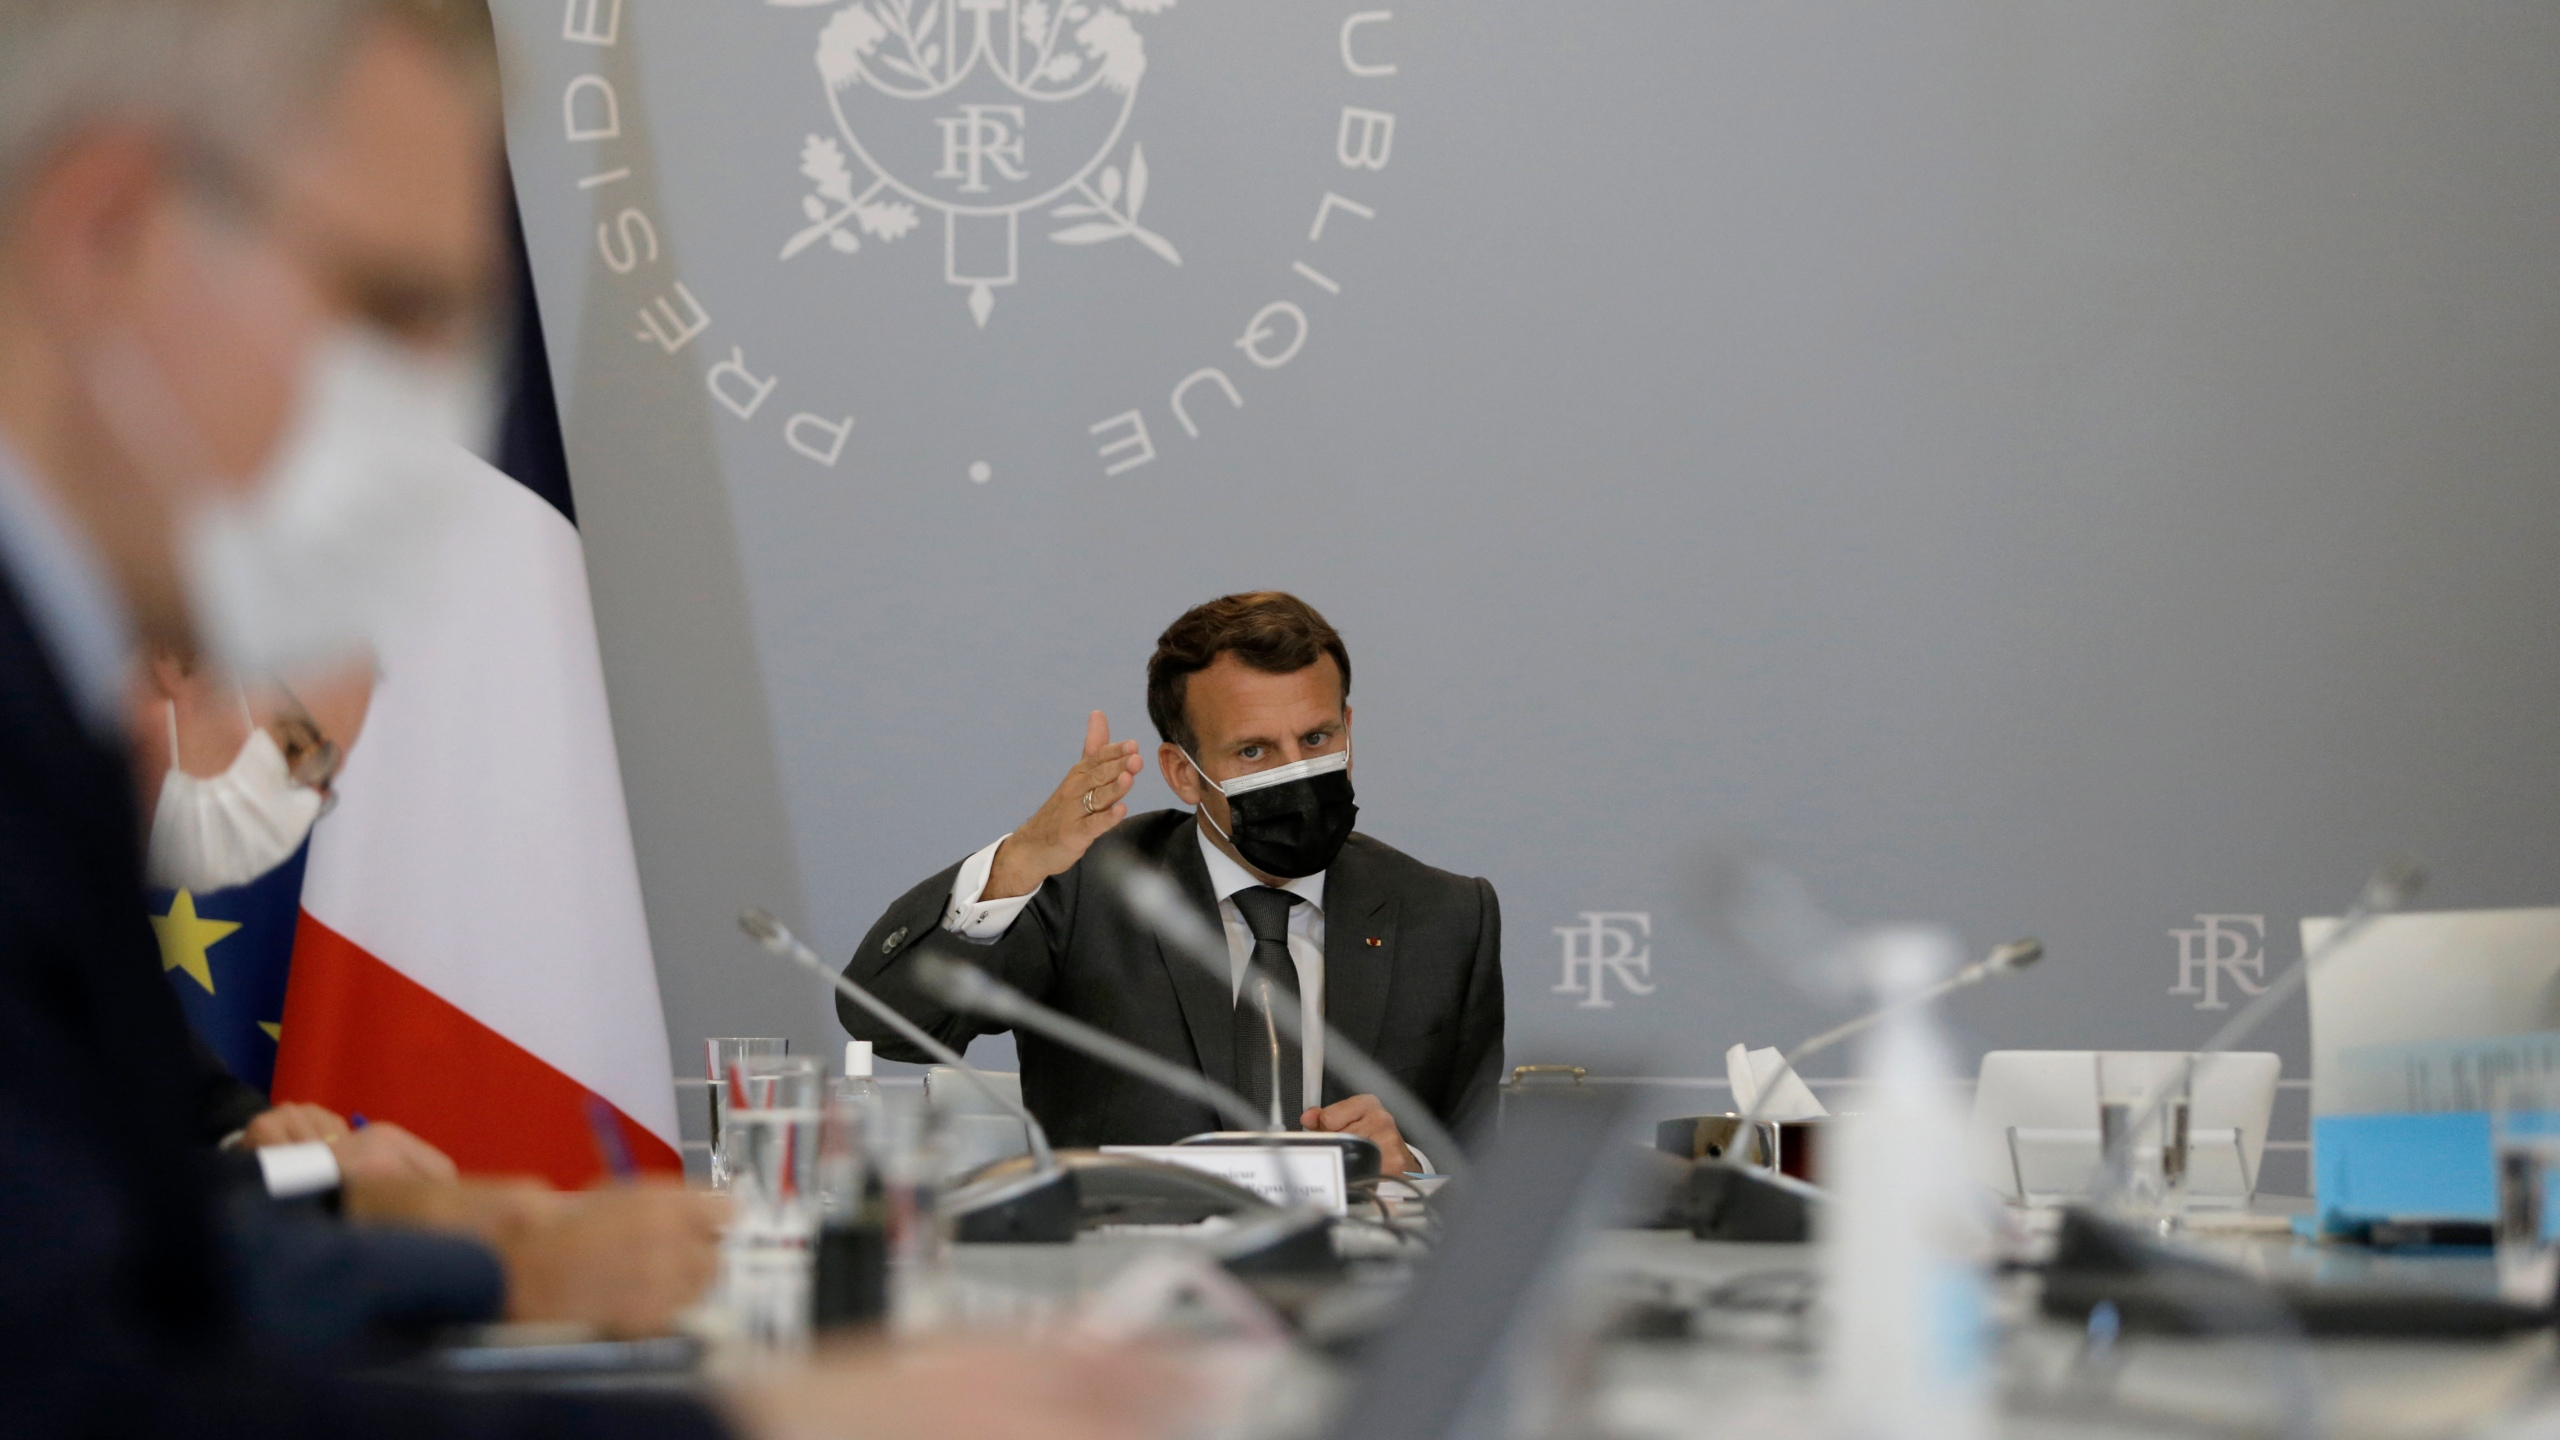 French President Macron in Montpellier for a visit on the theme of security